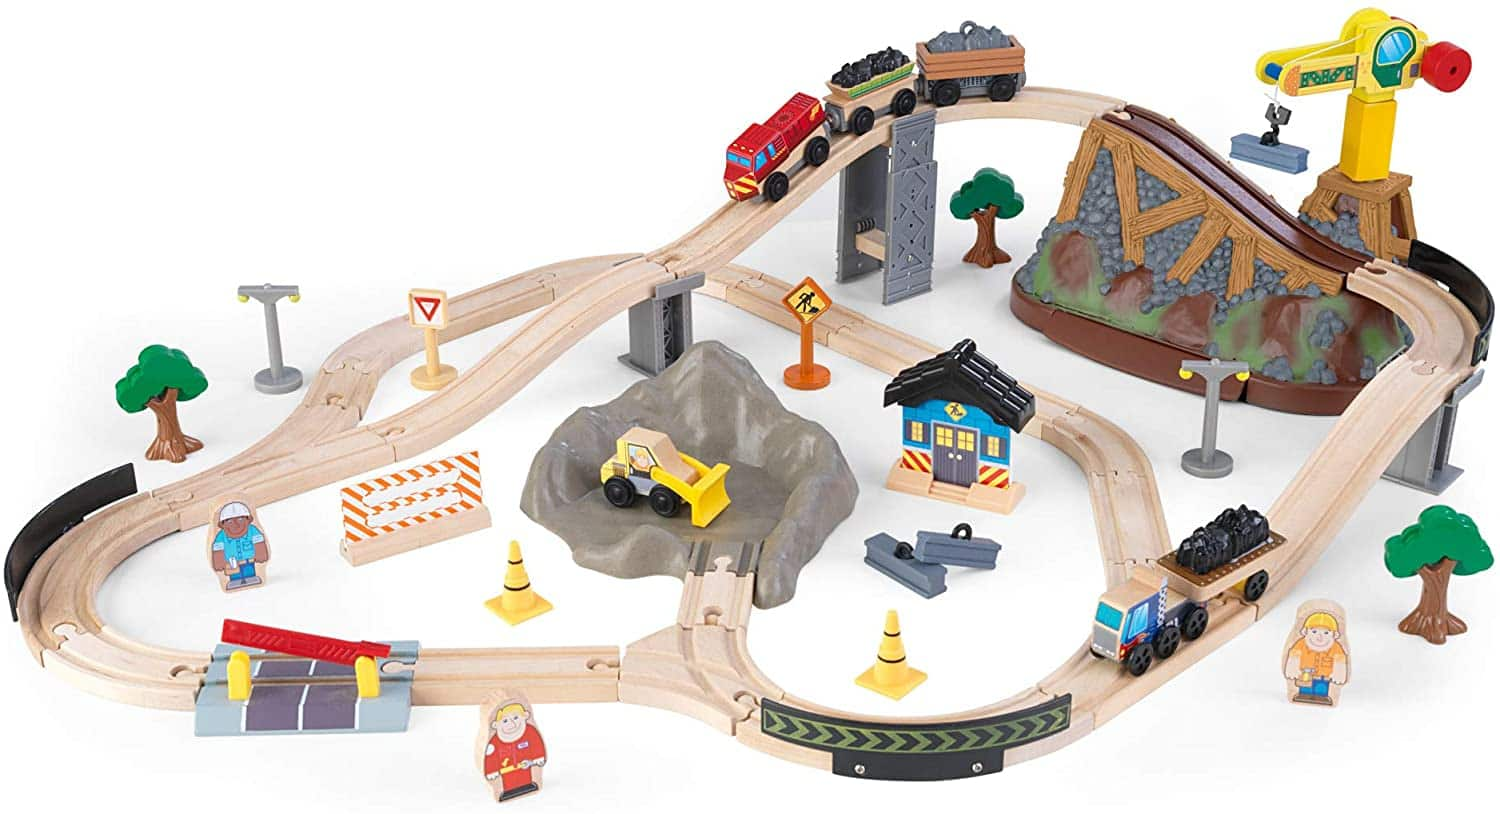 61-Piece KidKraft Bucket Top Construction Train Set $21.65 + Free Shipping w/ Prime or $25+